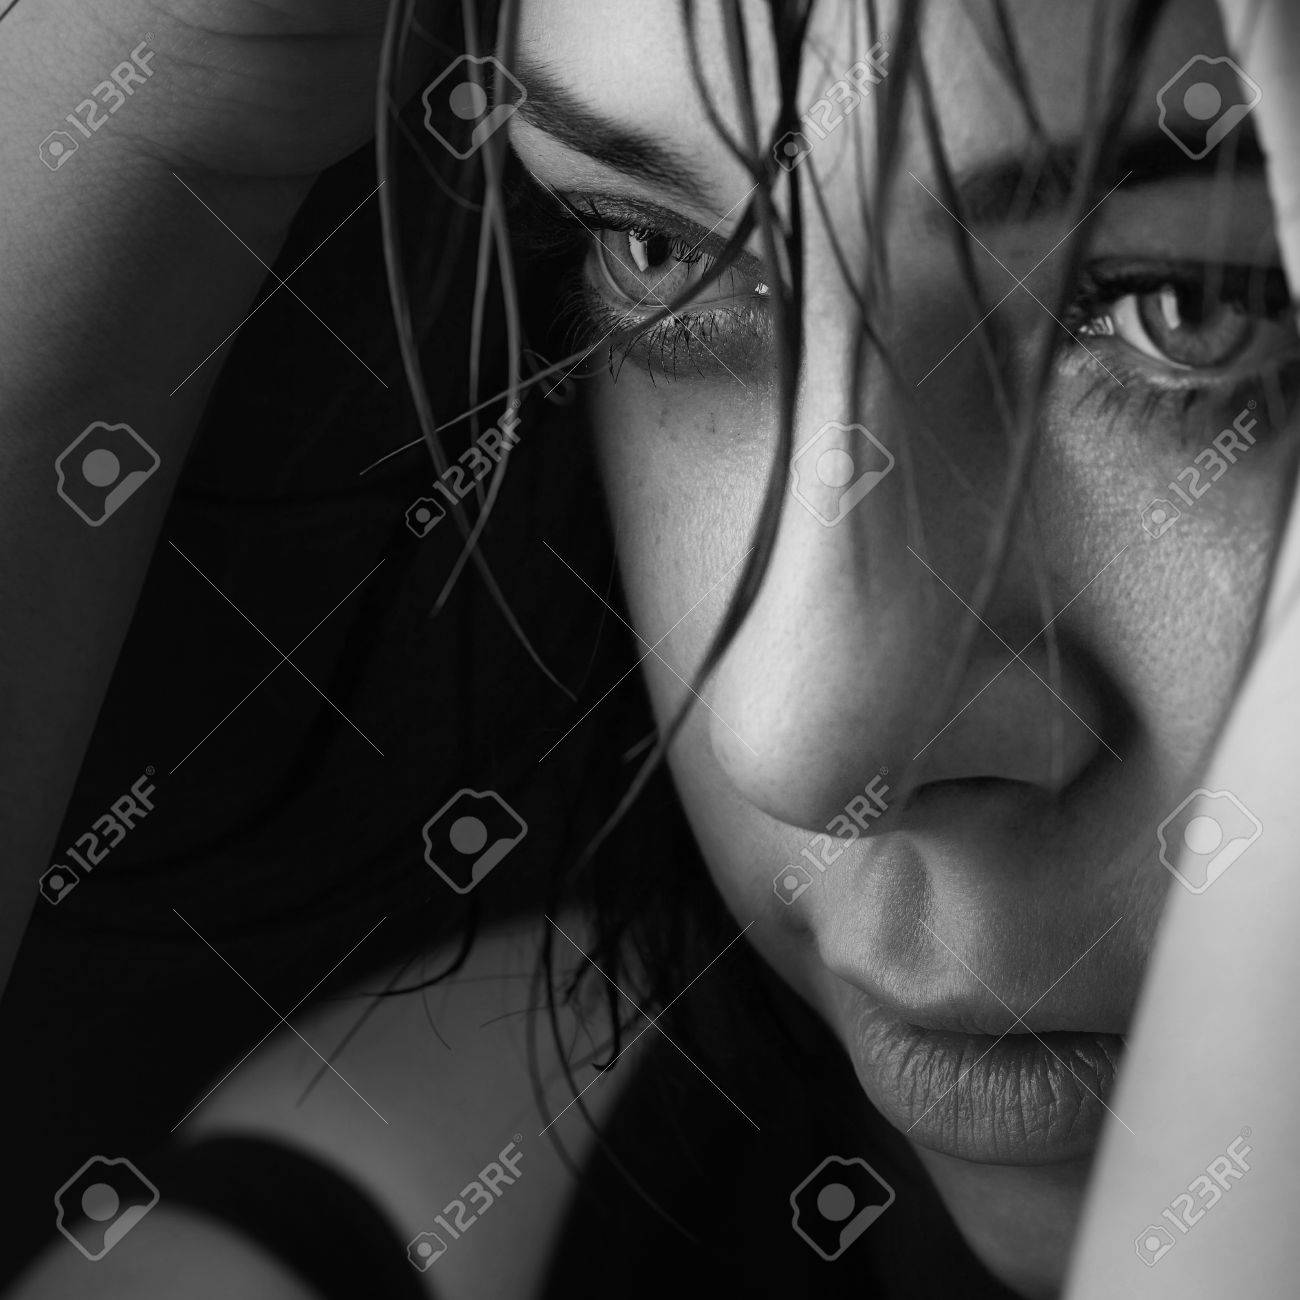 beauty girl cry on black background - 34175858